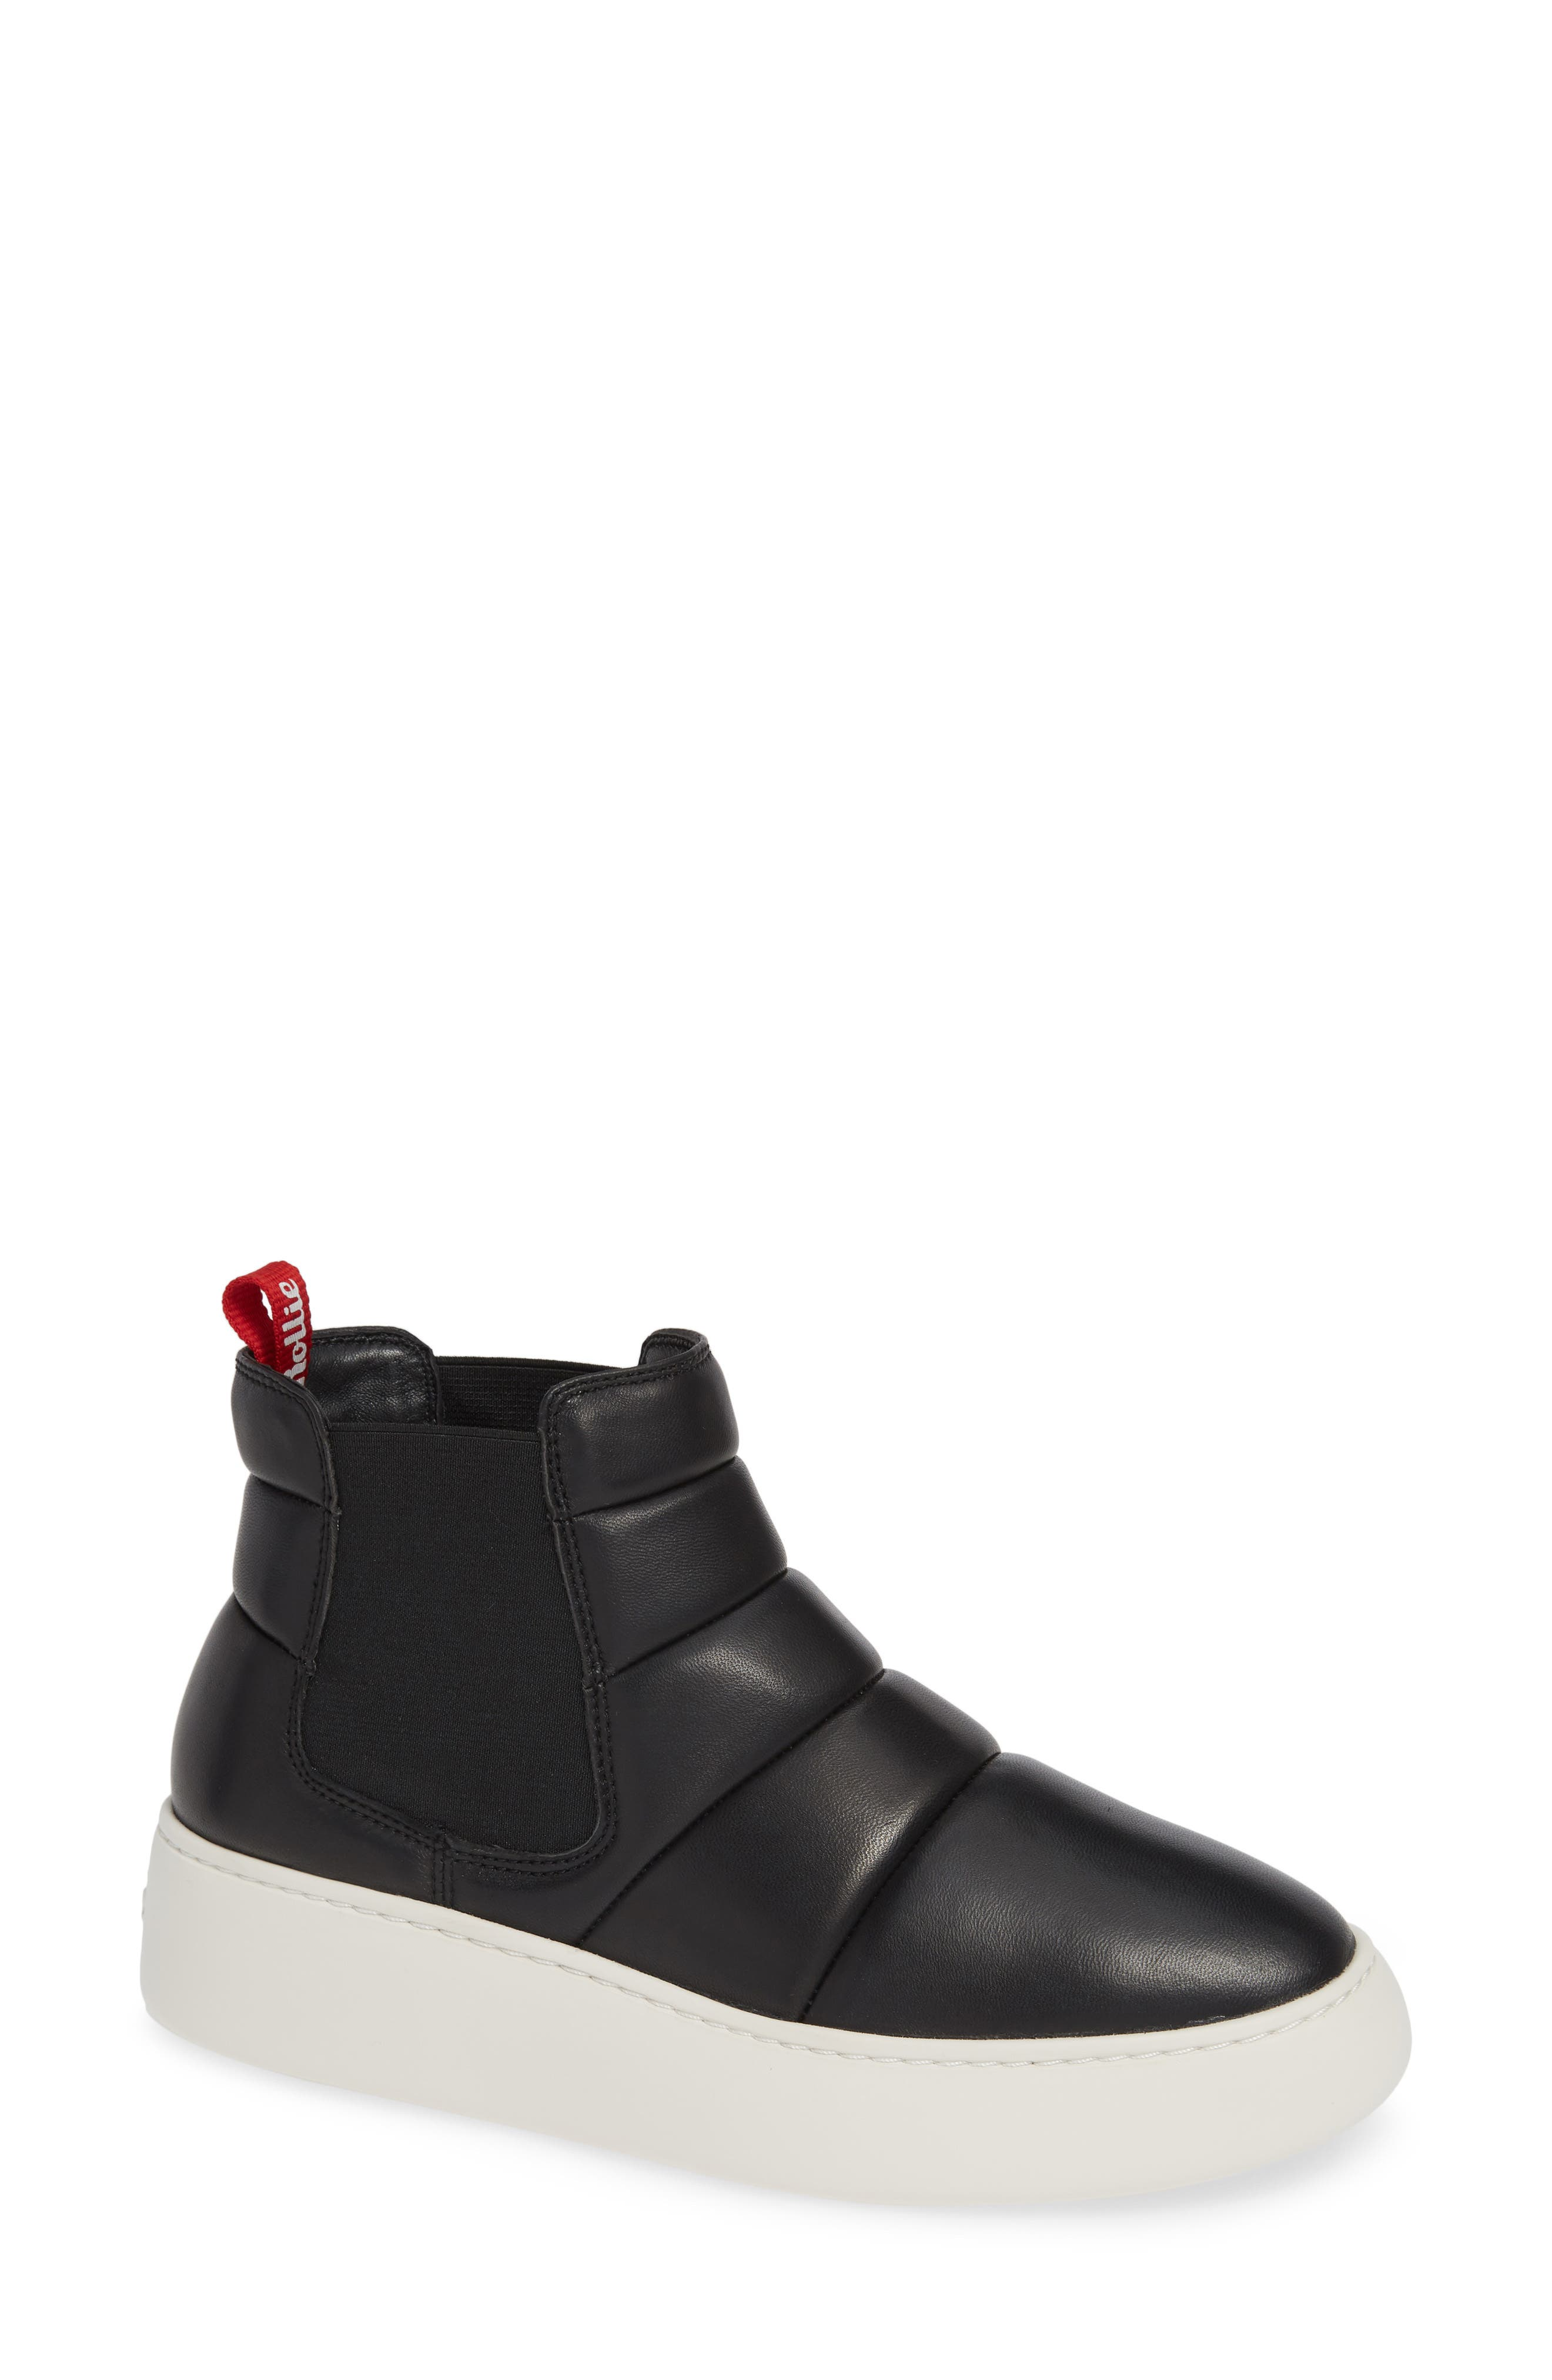 Snow City Quilted Chelsea Sneaker Boot,                             Main thumbnail 1, color,                             BLACK NAPPA